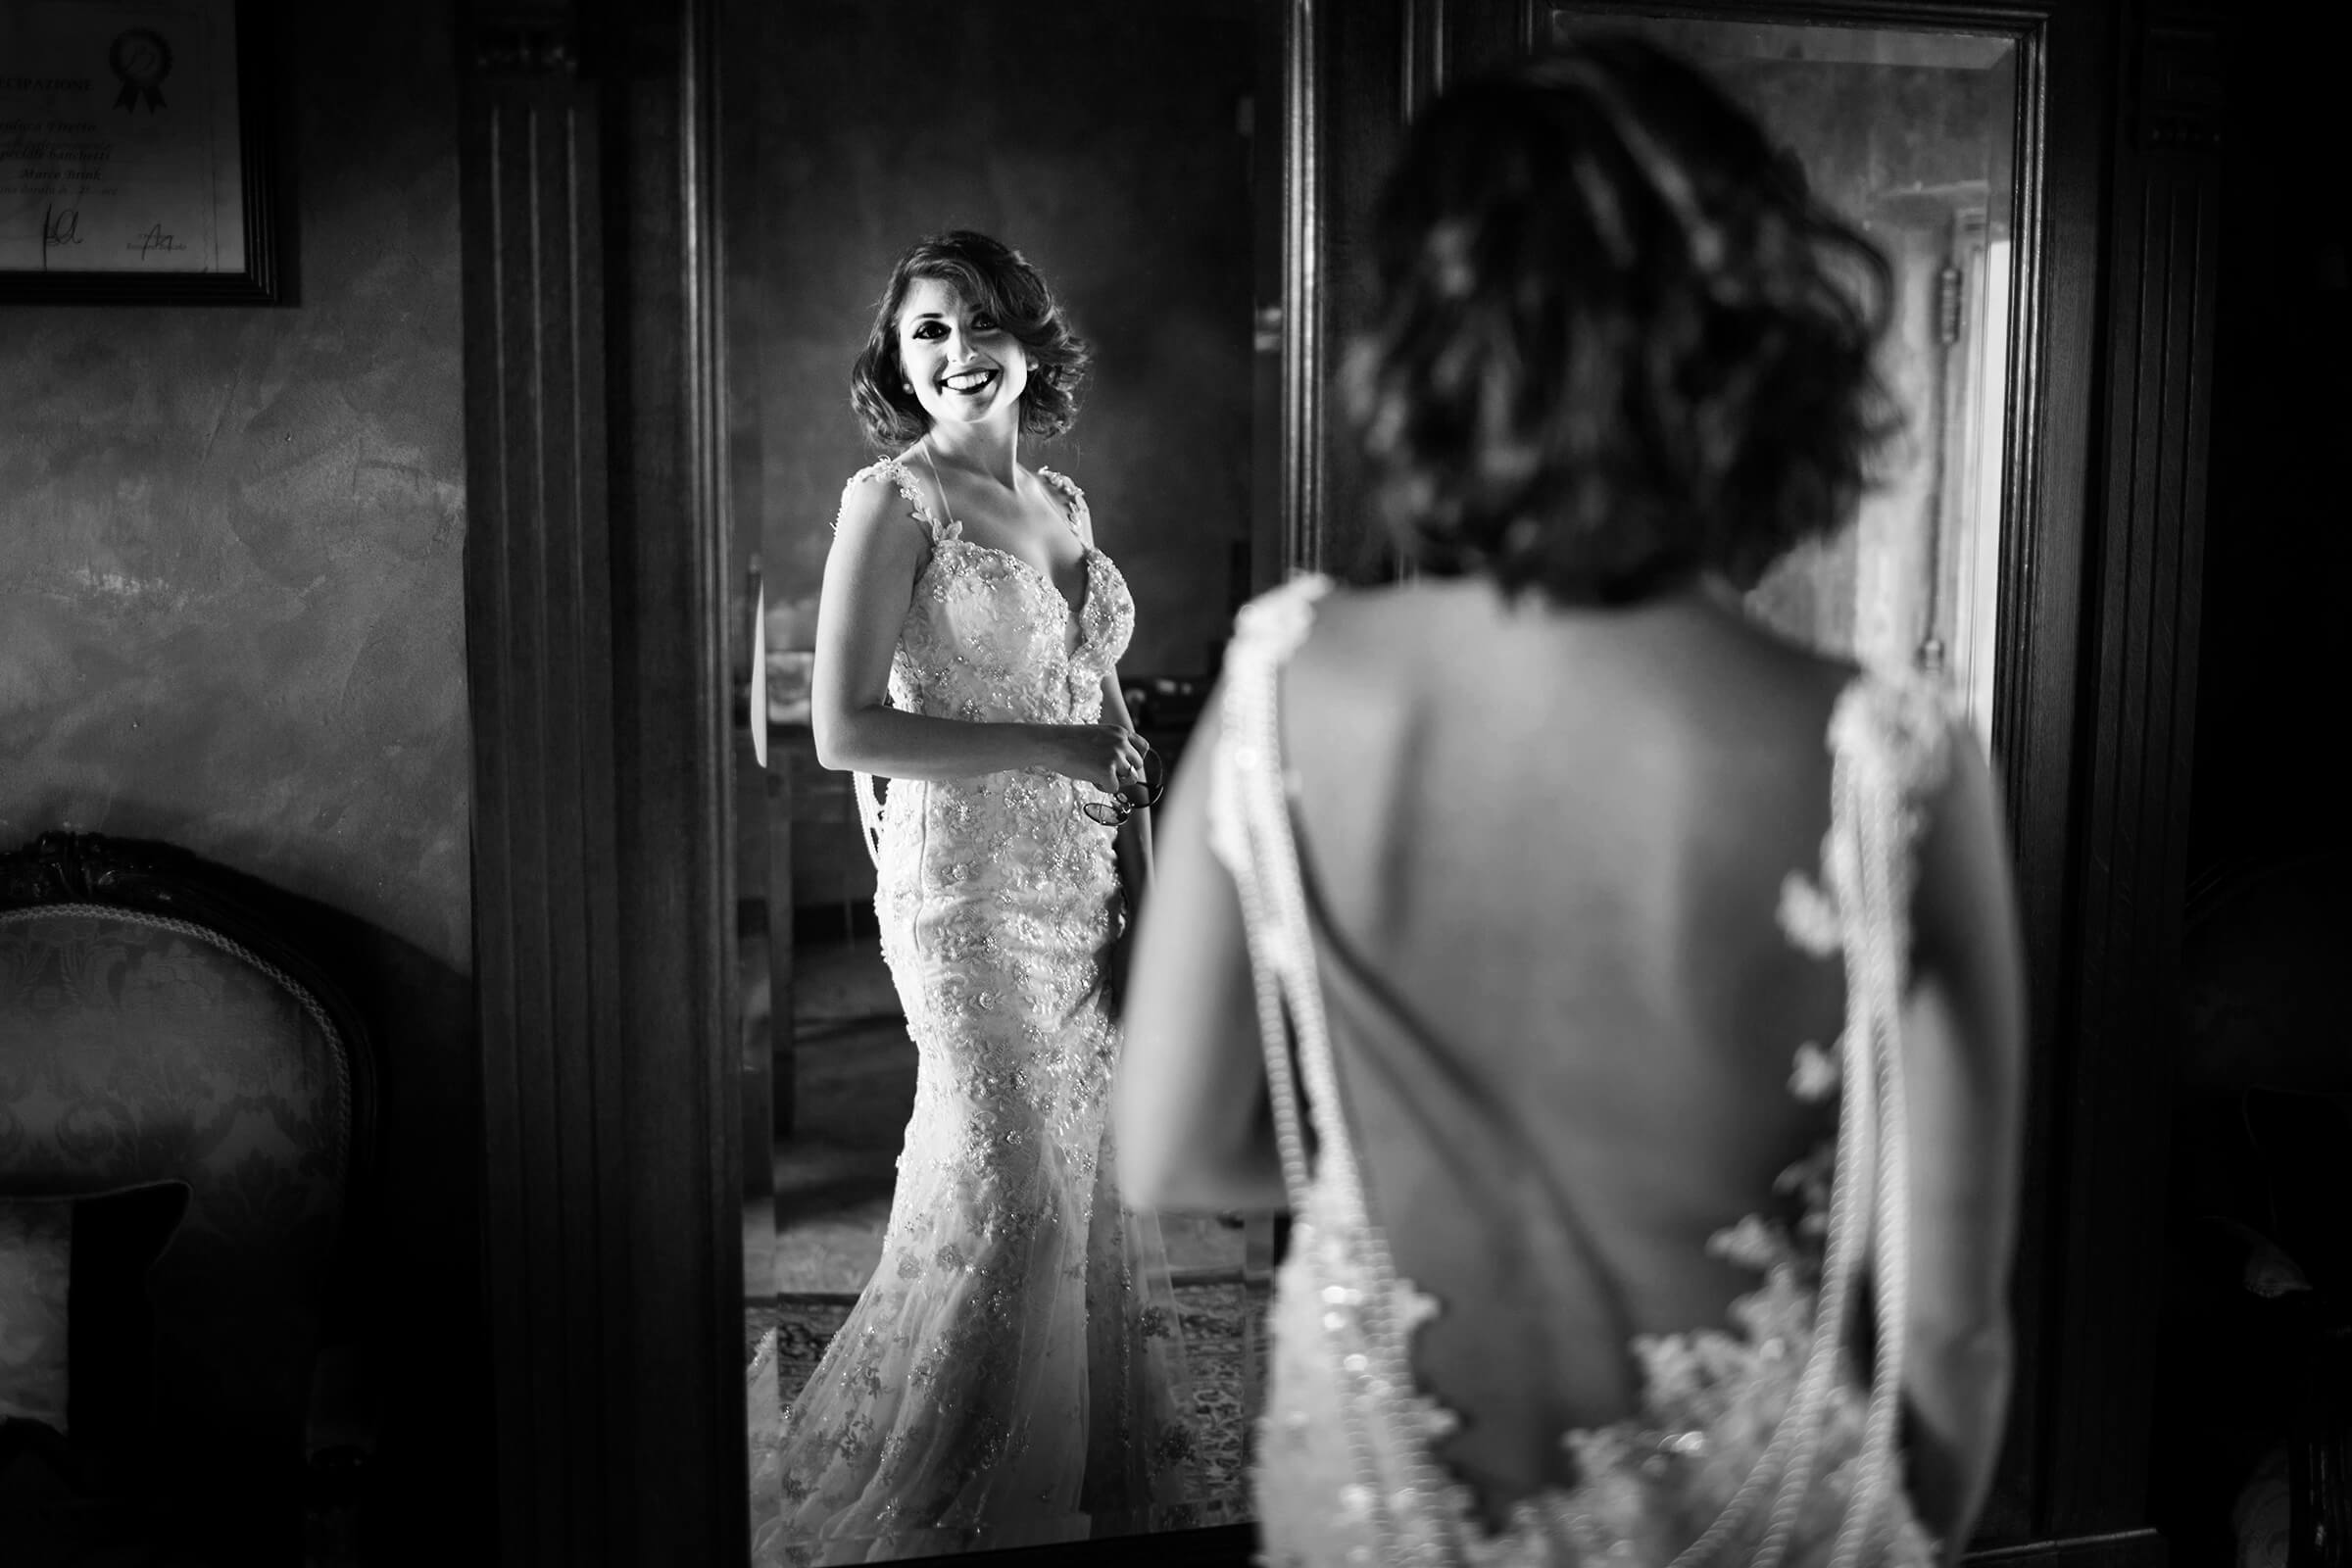 Glamourous bride smiles at her reflection - photo by Nino Lombardo - Italy